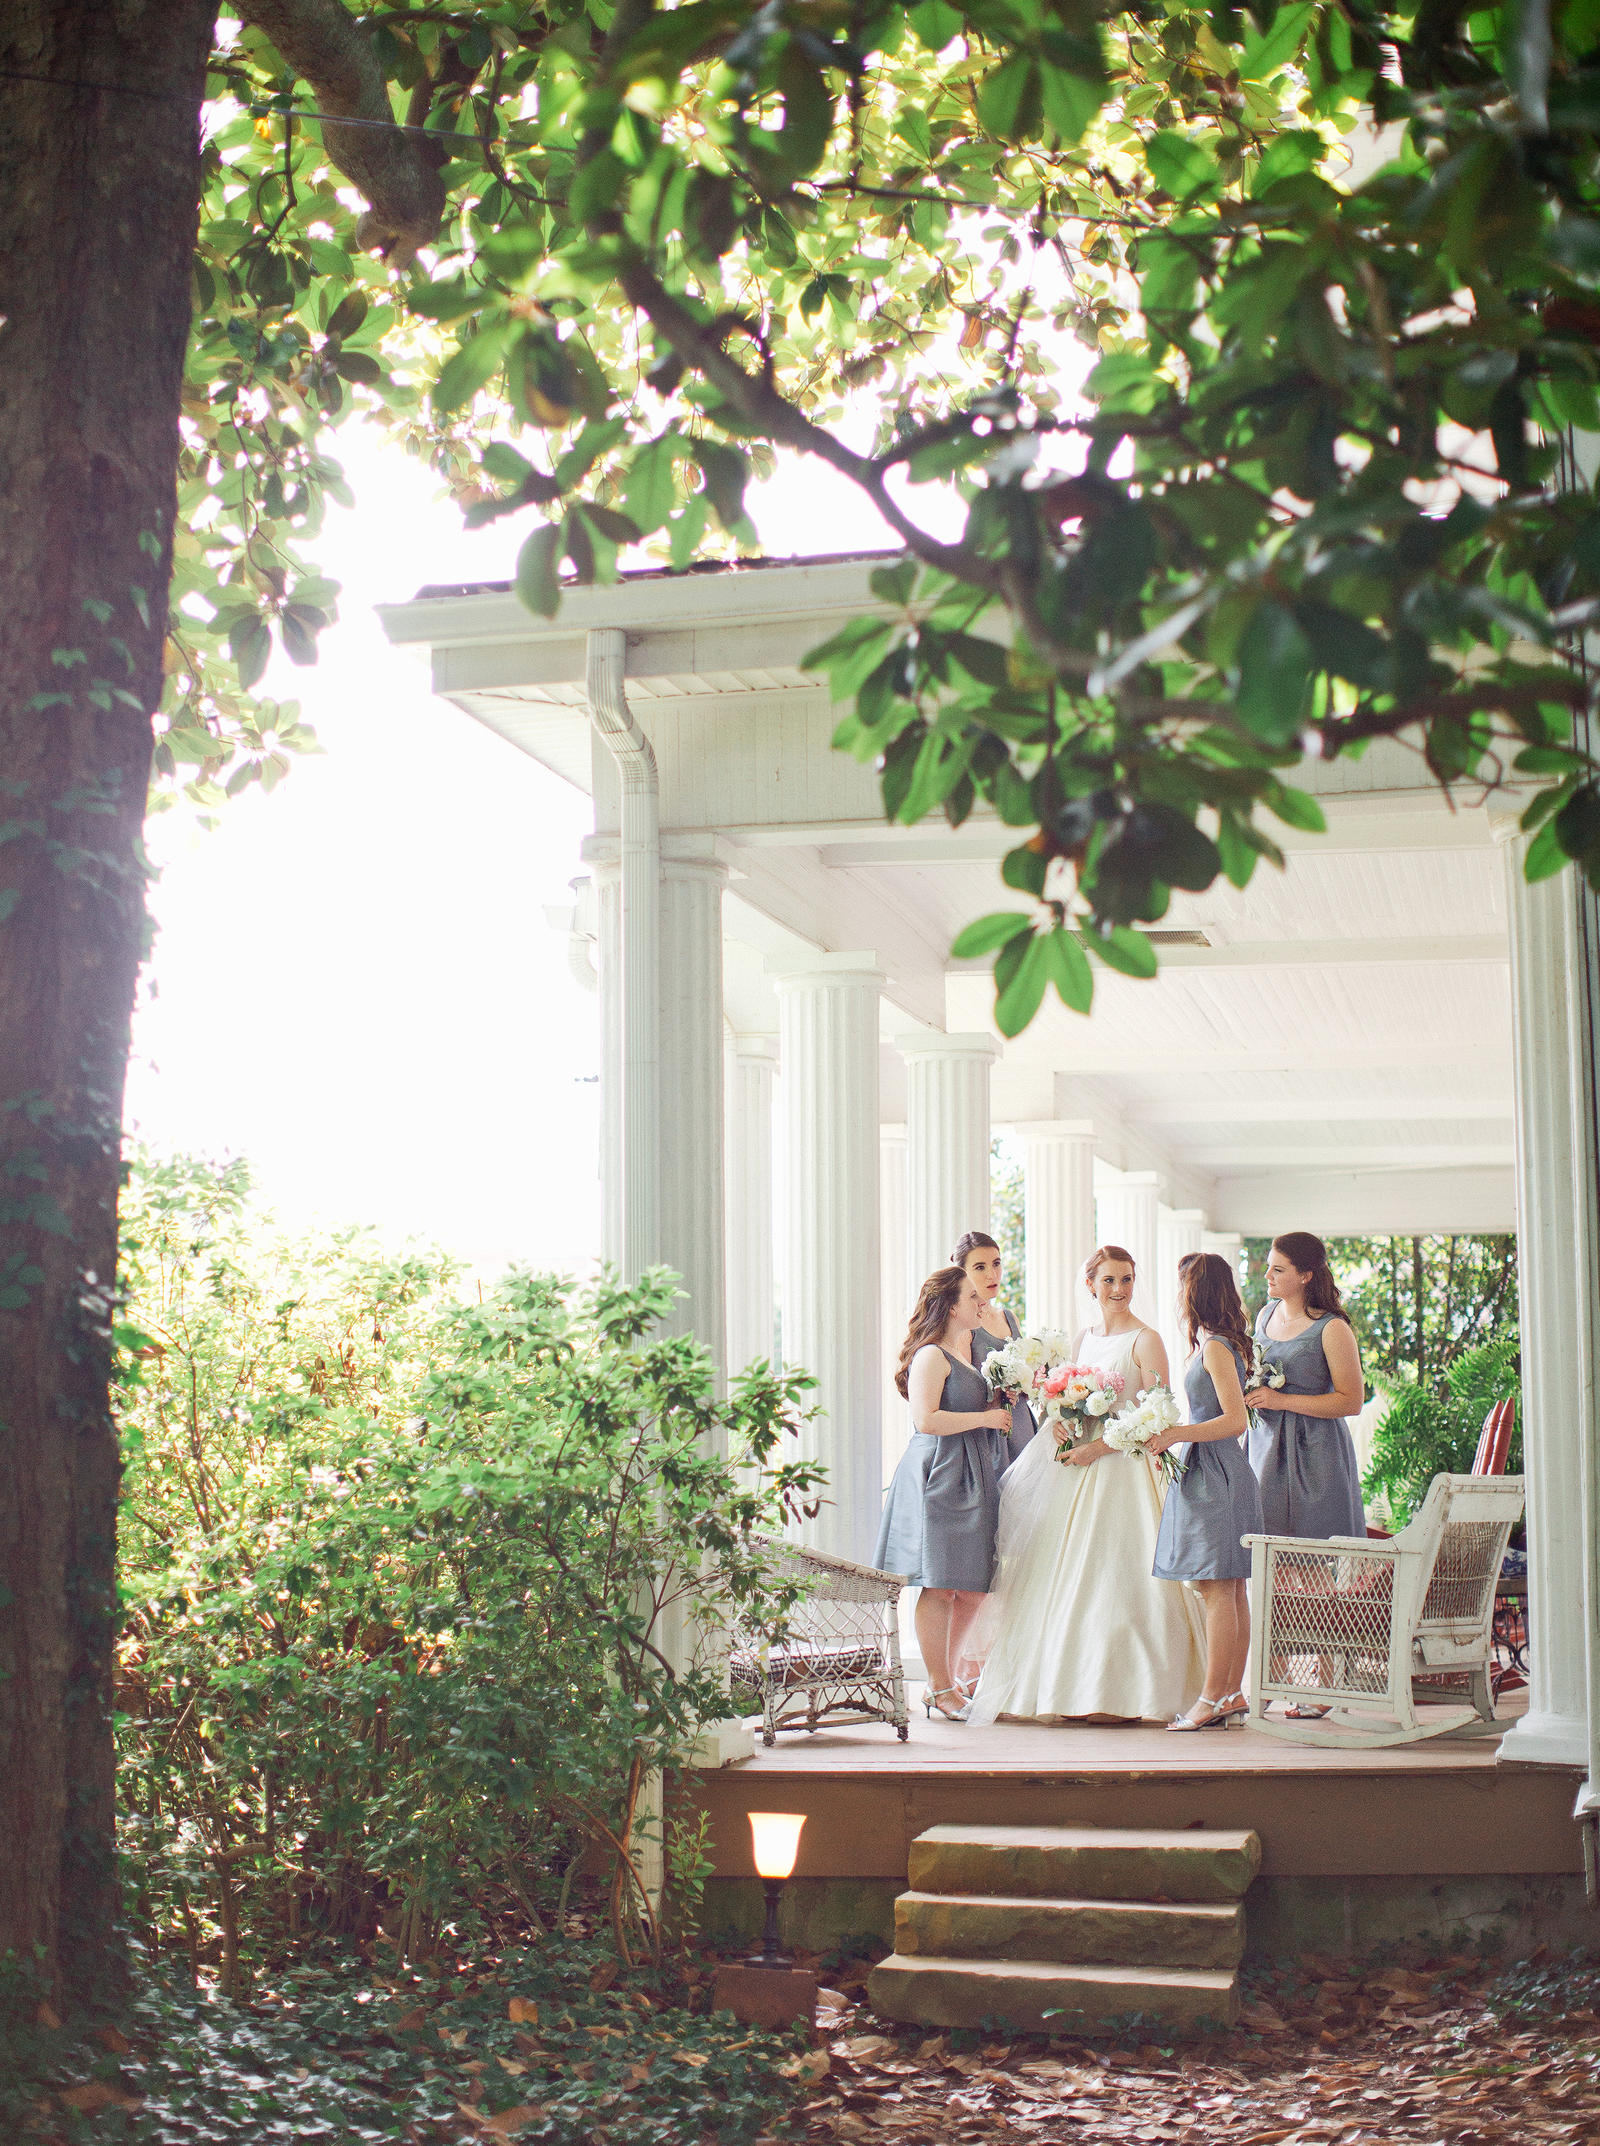 Wedding Photography | A bride and her wedding party share a laugh, standing on a porch.